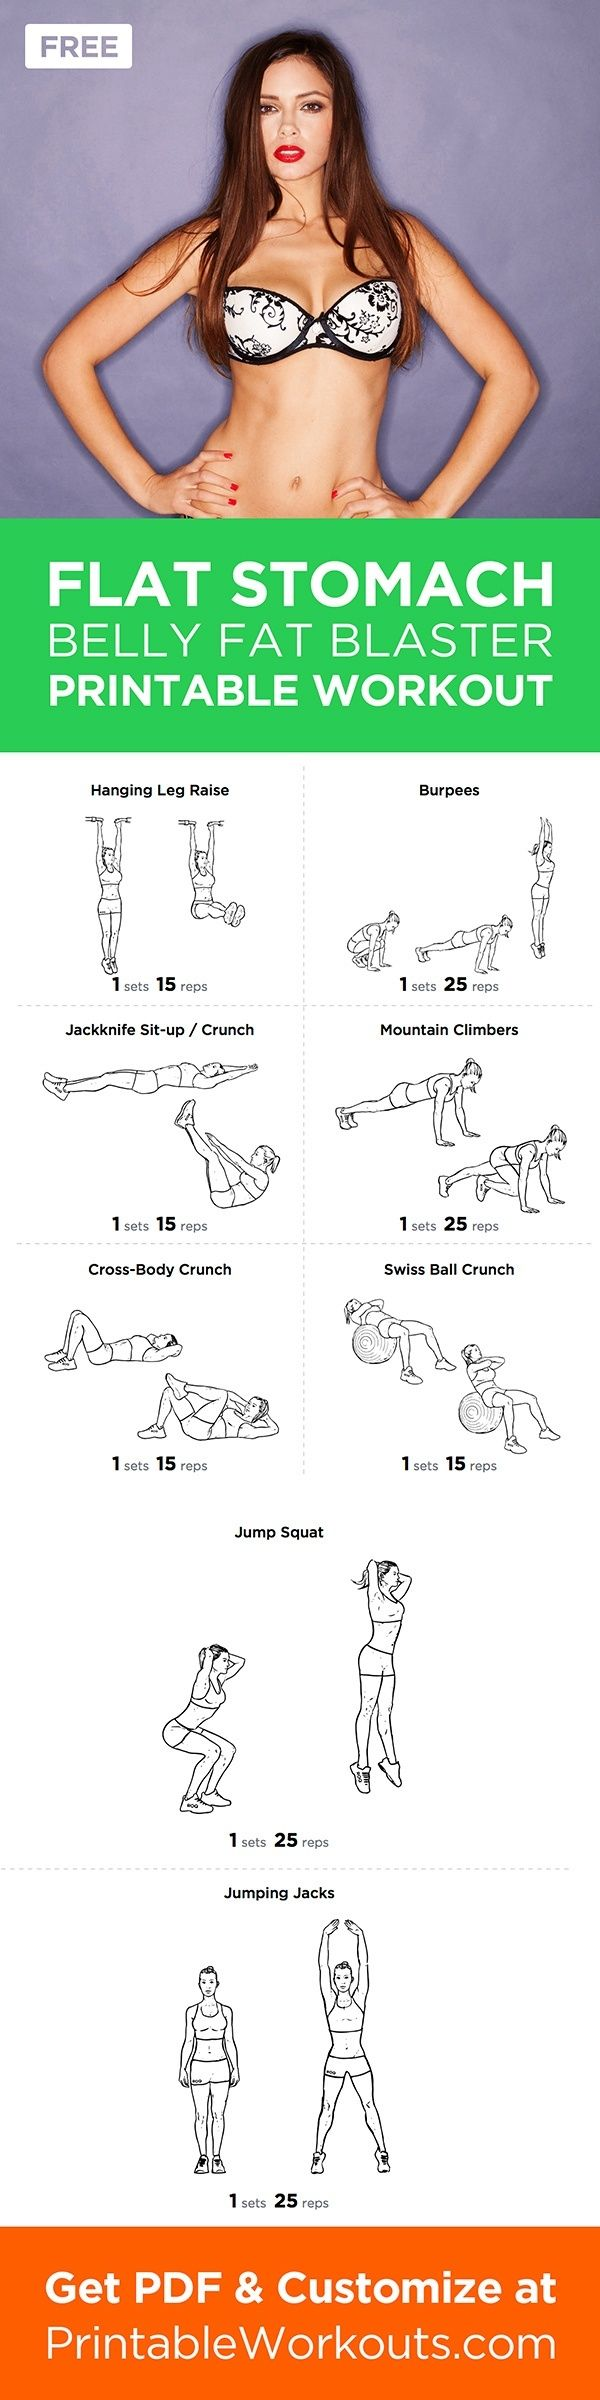 This is one of the best workout plans for core that I've seen/ pinned... Id plot it up into circuits and repeat three times each circuit before movong to the next circuit